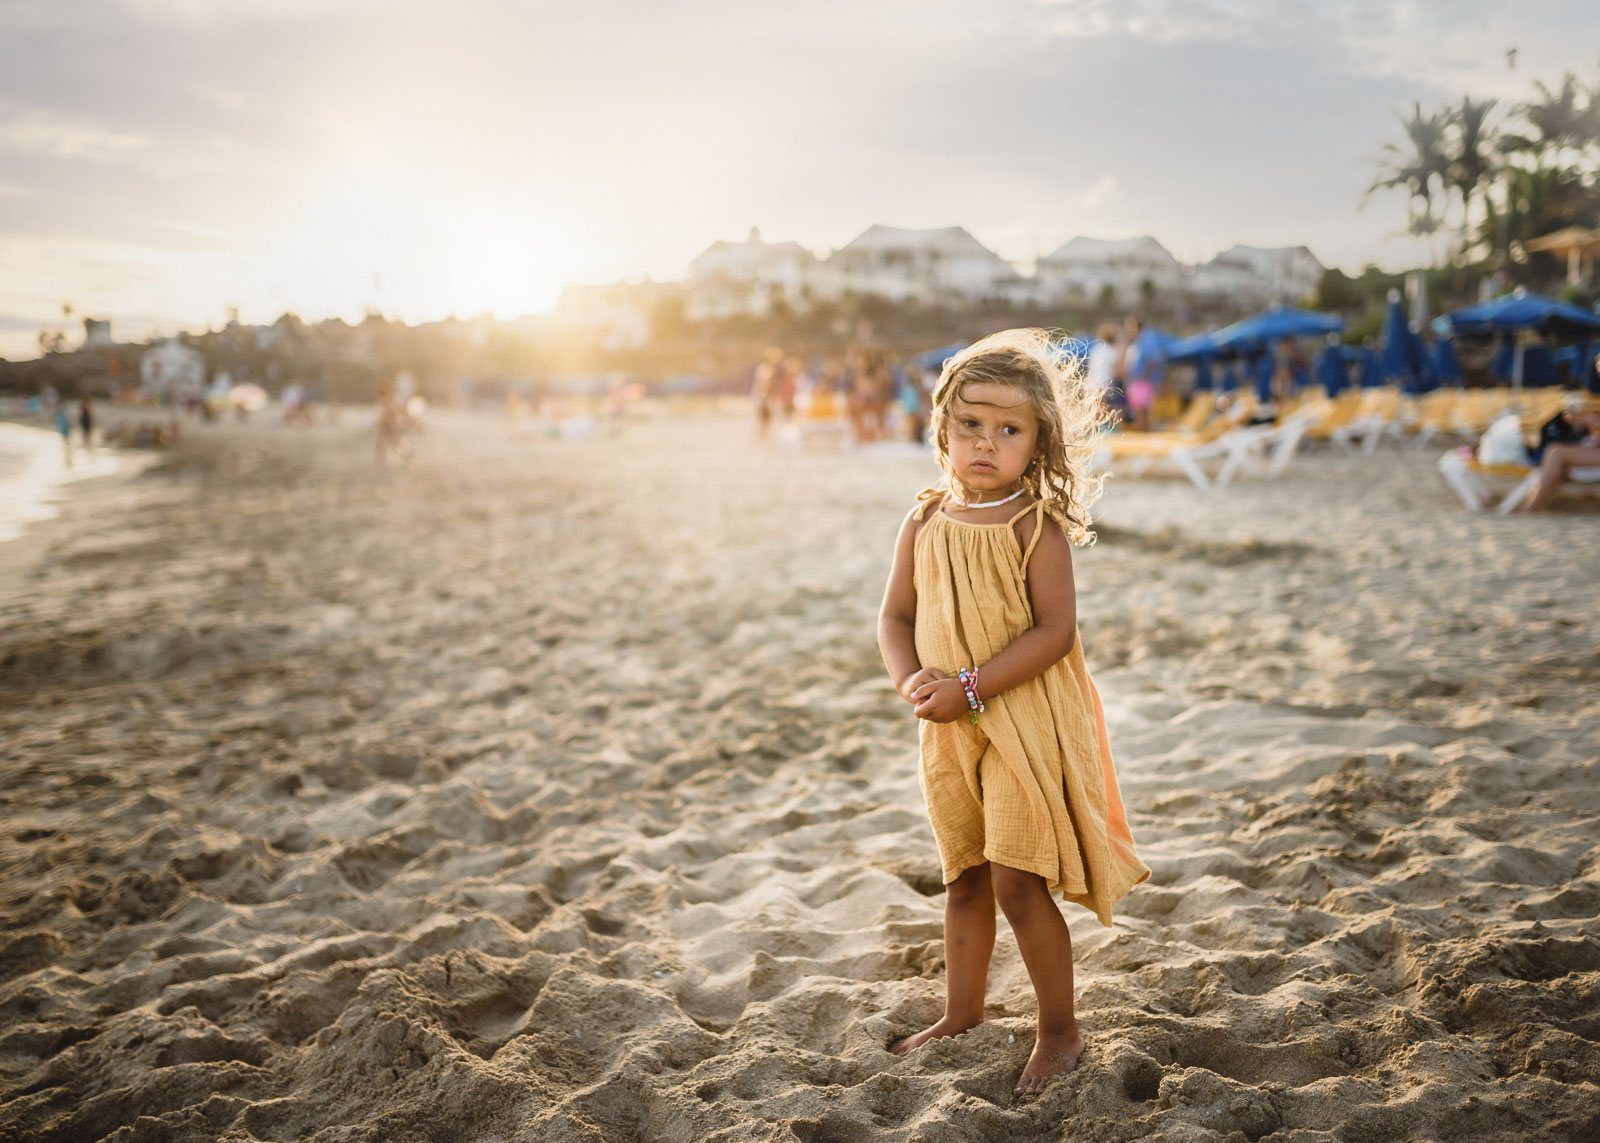 backlit pic of girl in a yellow dress on a beach by Anita Perminova